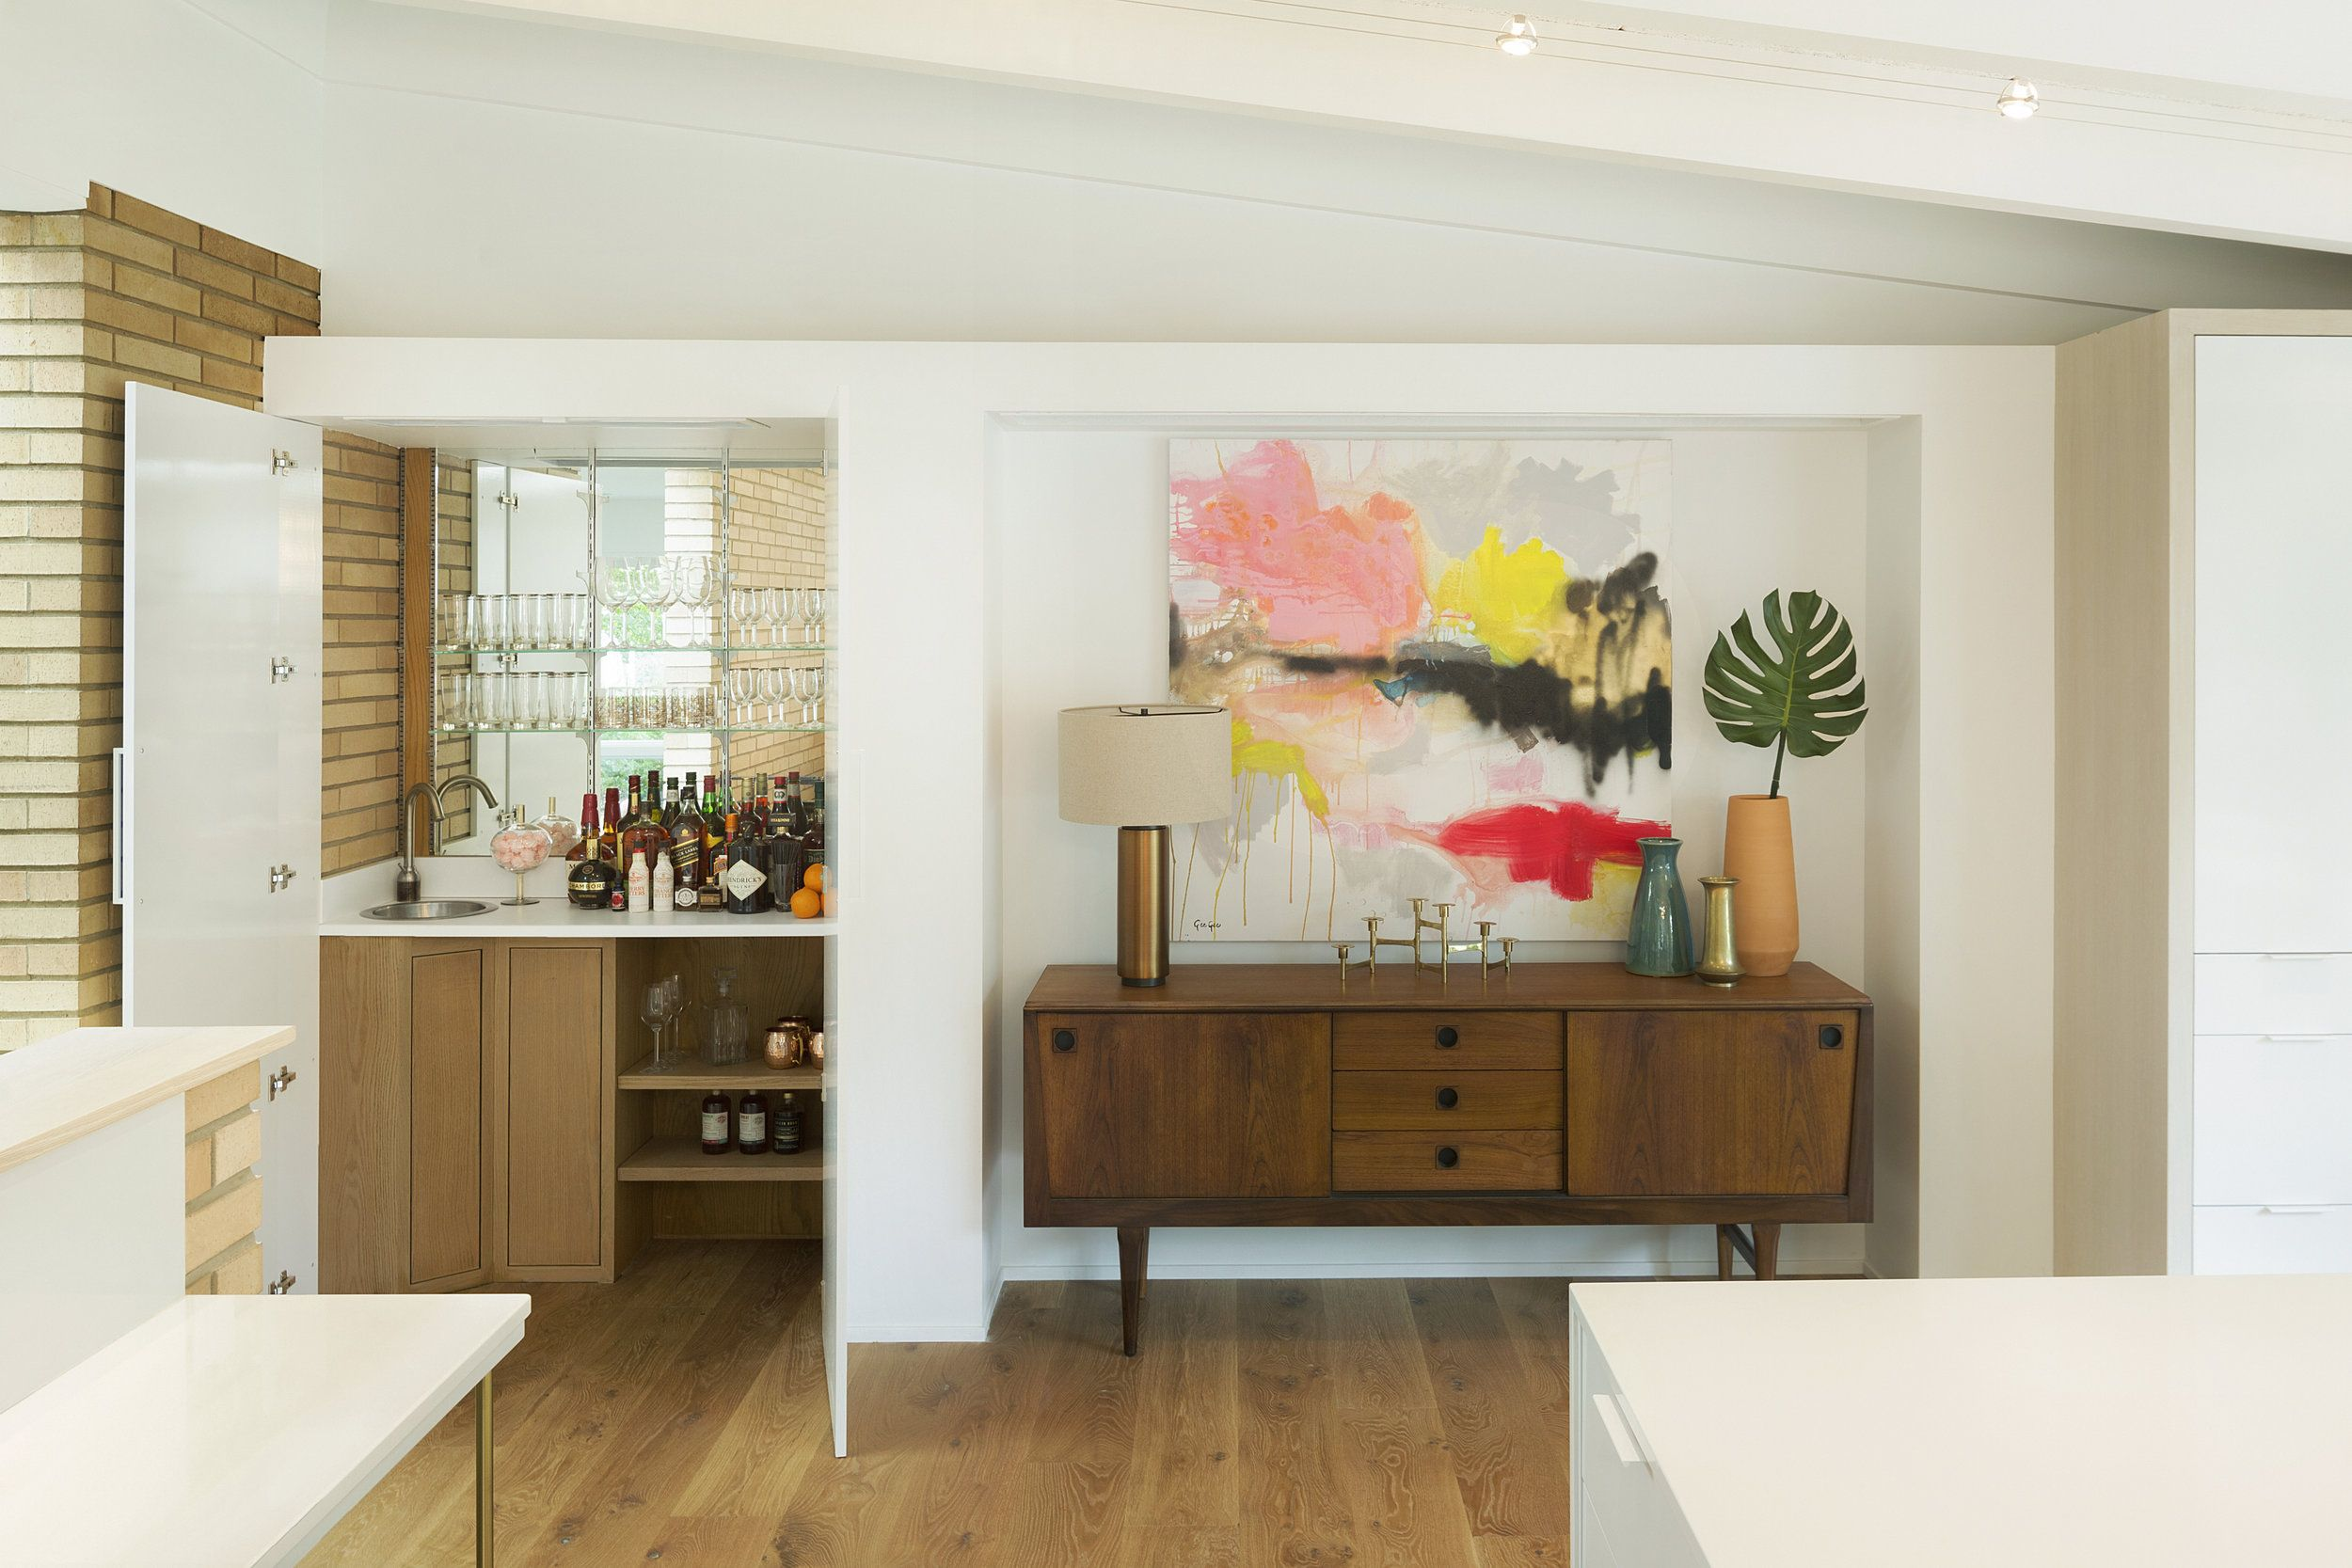 minneapolis mn interior design firm midcentury renovation